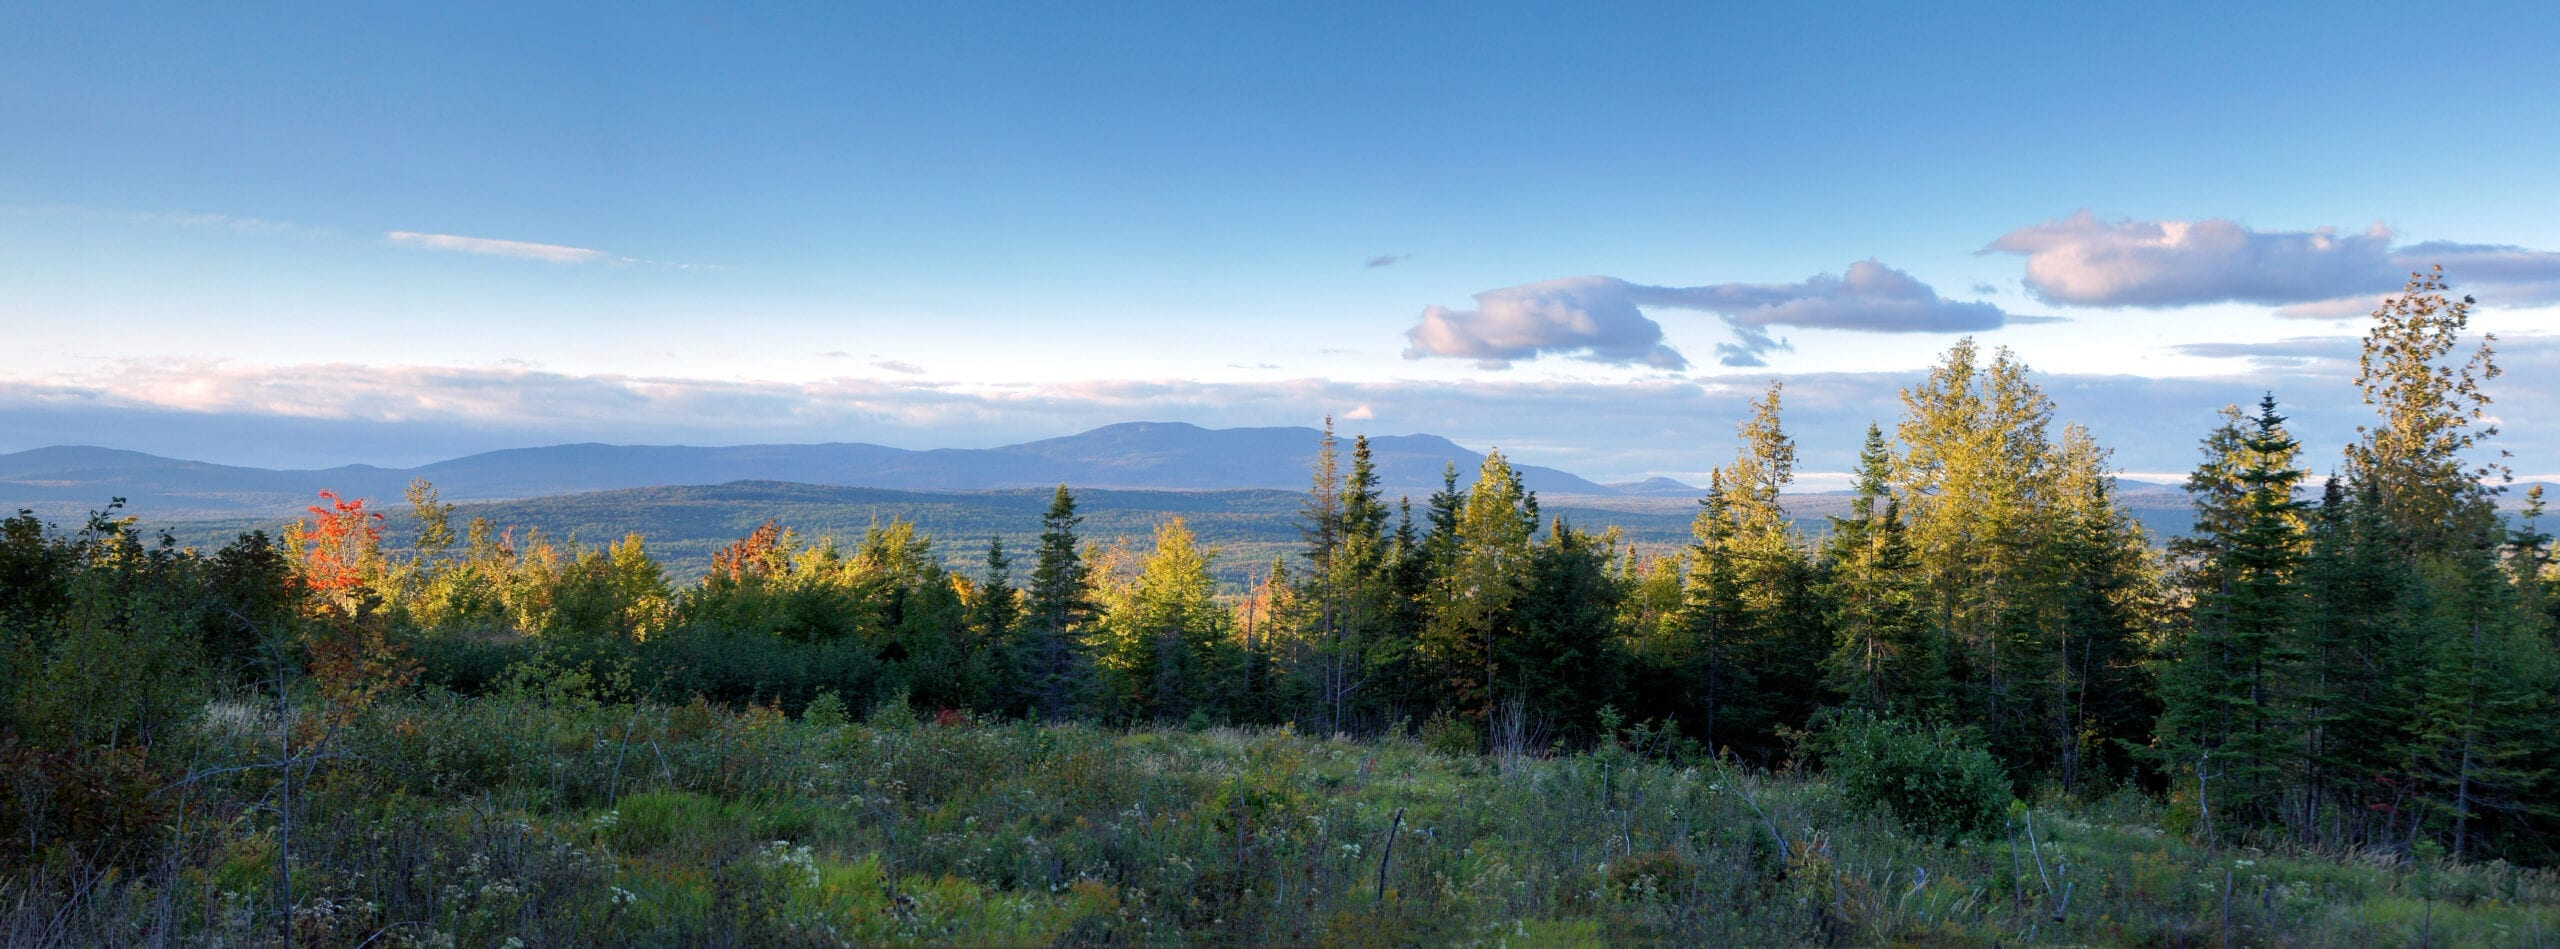 Moose River Valley, View from Route 201, Maine's Kennebec Valley, photo